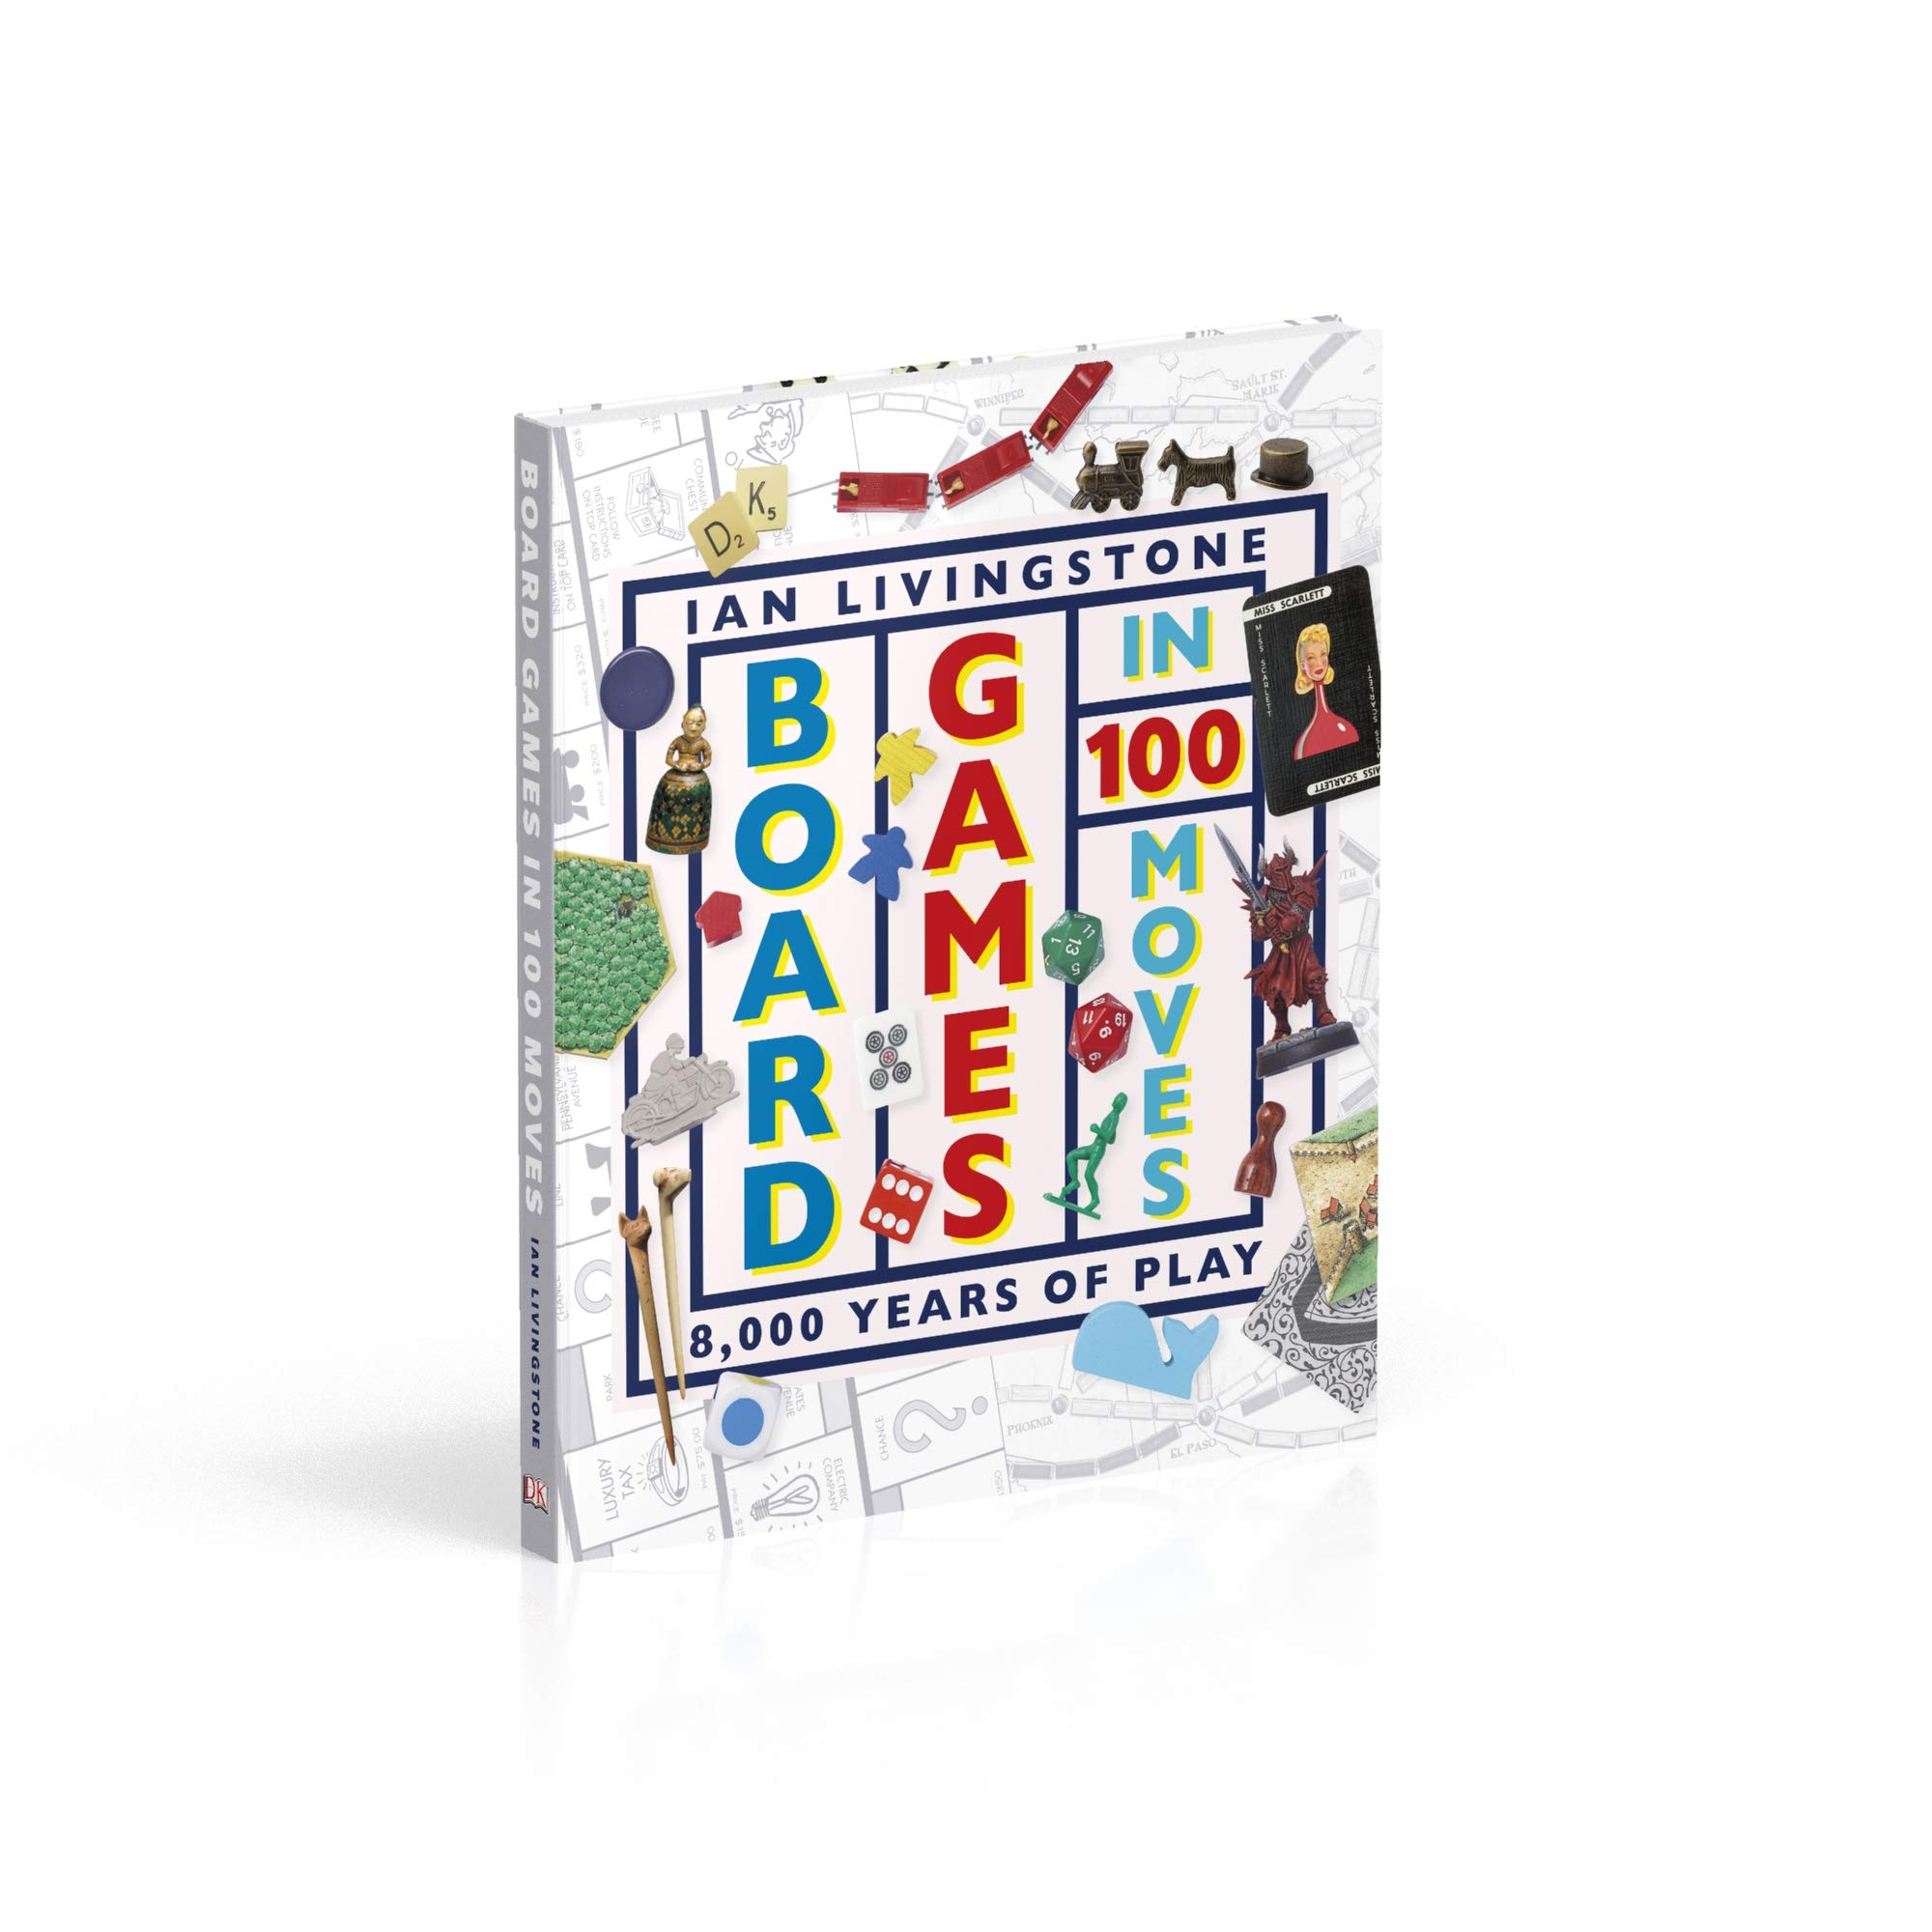 Board Games in 100 Moves: Amazon.es: Livingstone, Ian, Wallis, James: Libros en idiomas extranjeros